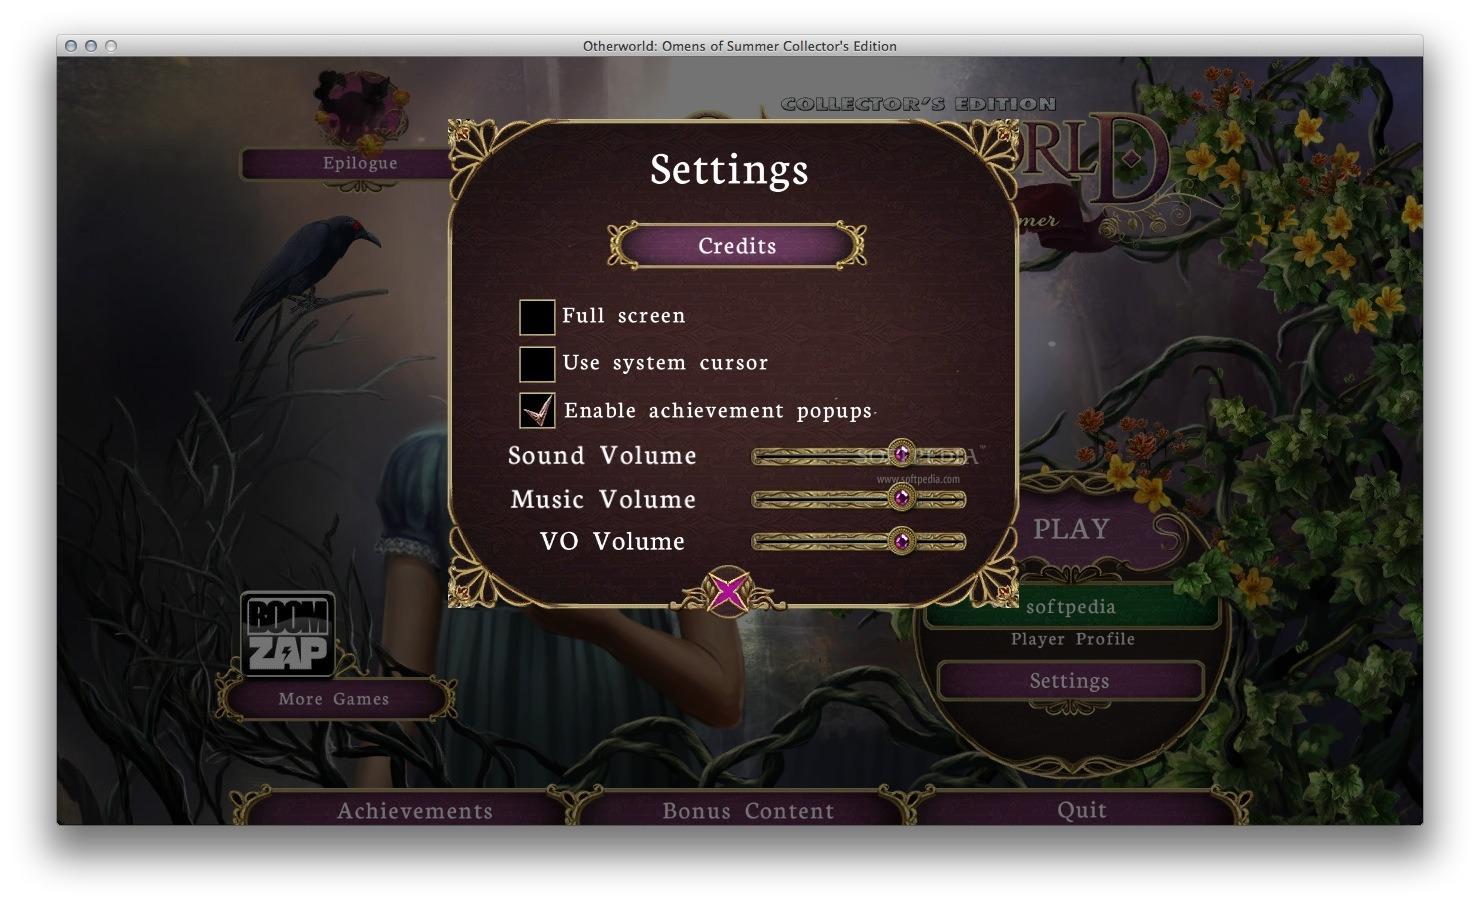 Otherworld: Omens of Summer CE screenshot 4 - In the 'Options' window you can adjust the sound level and more.